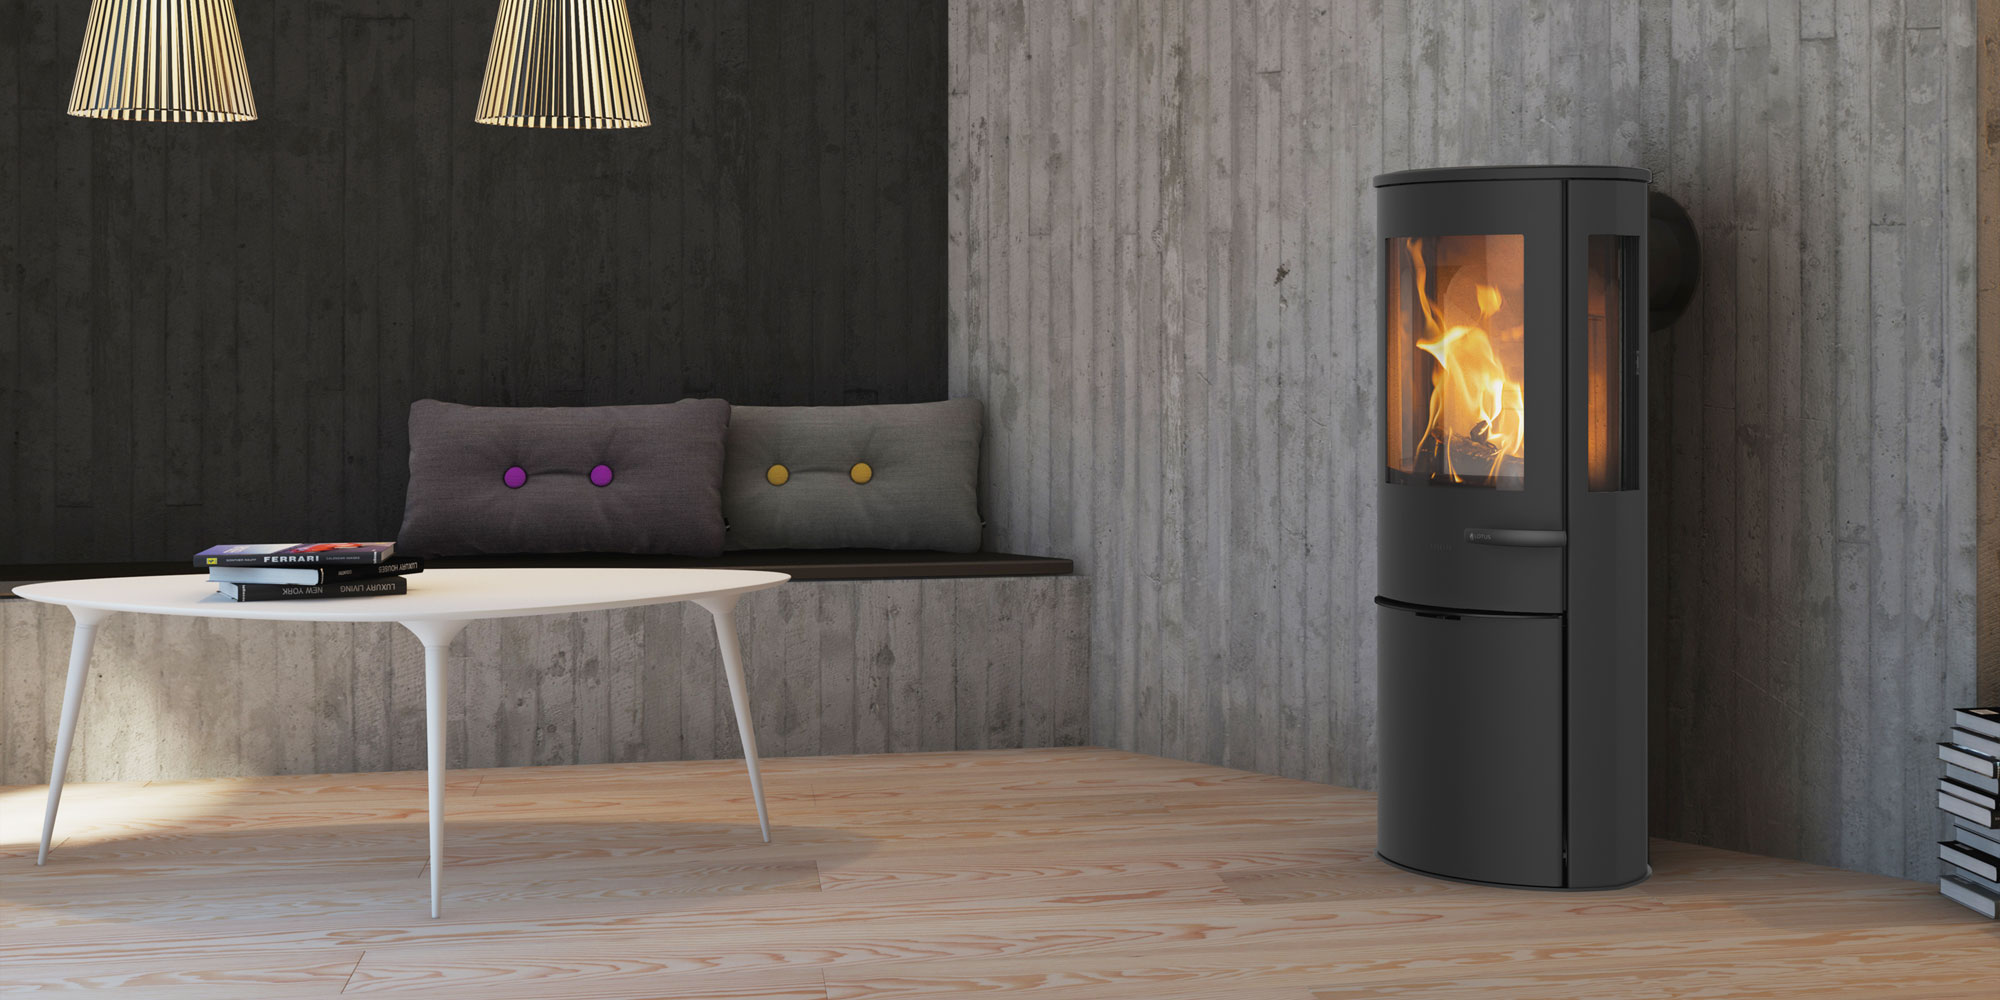 Lotus stoves from Denmark, available now in Cornwall